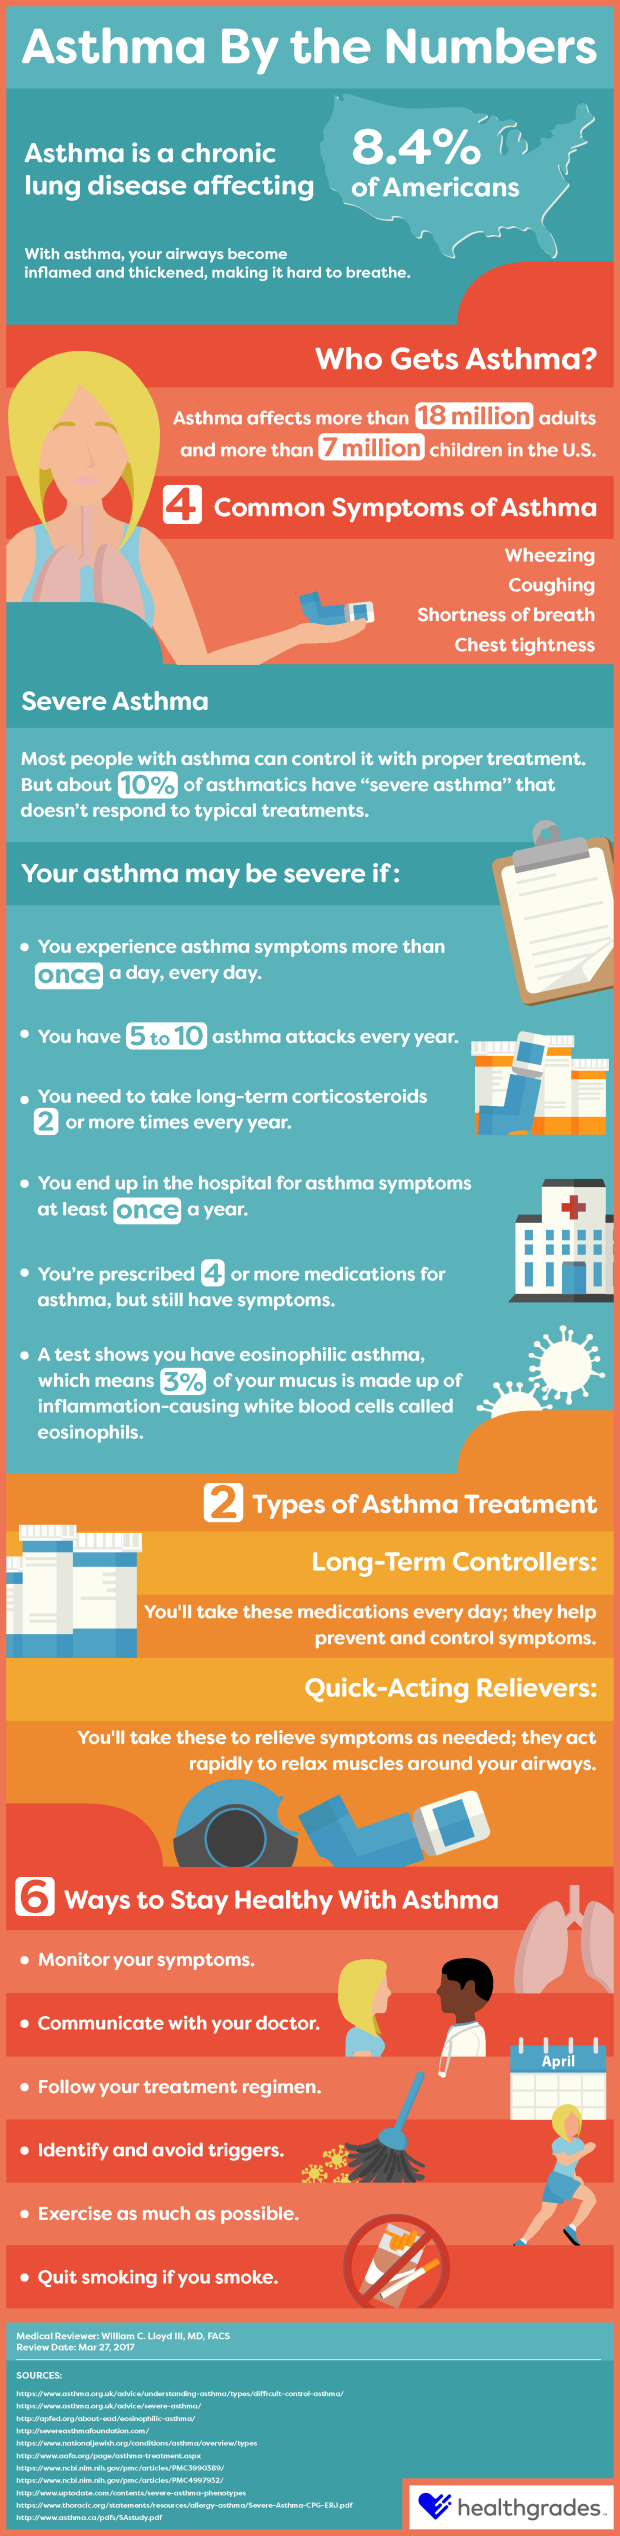 asthma by the numbers